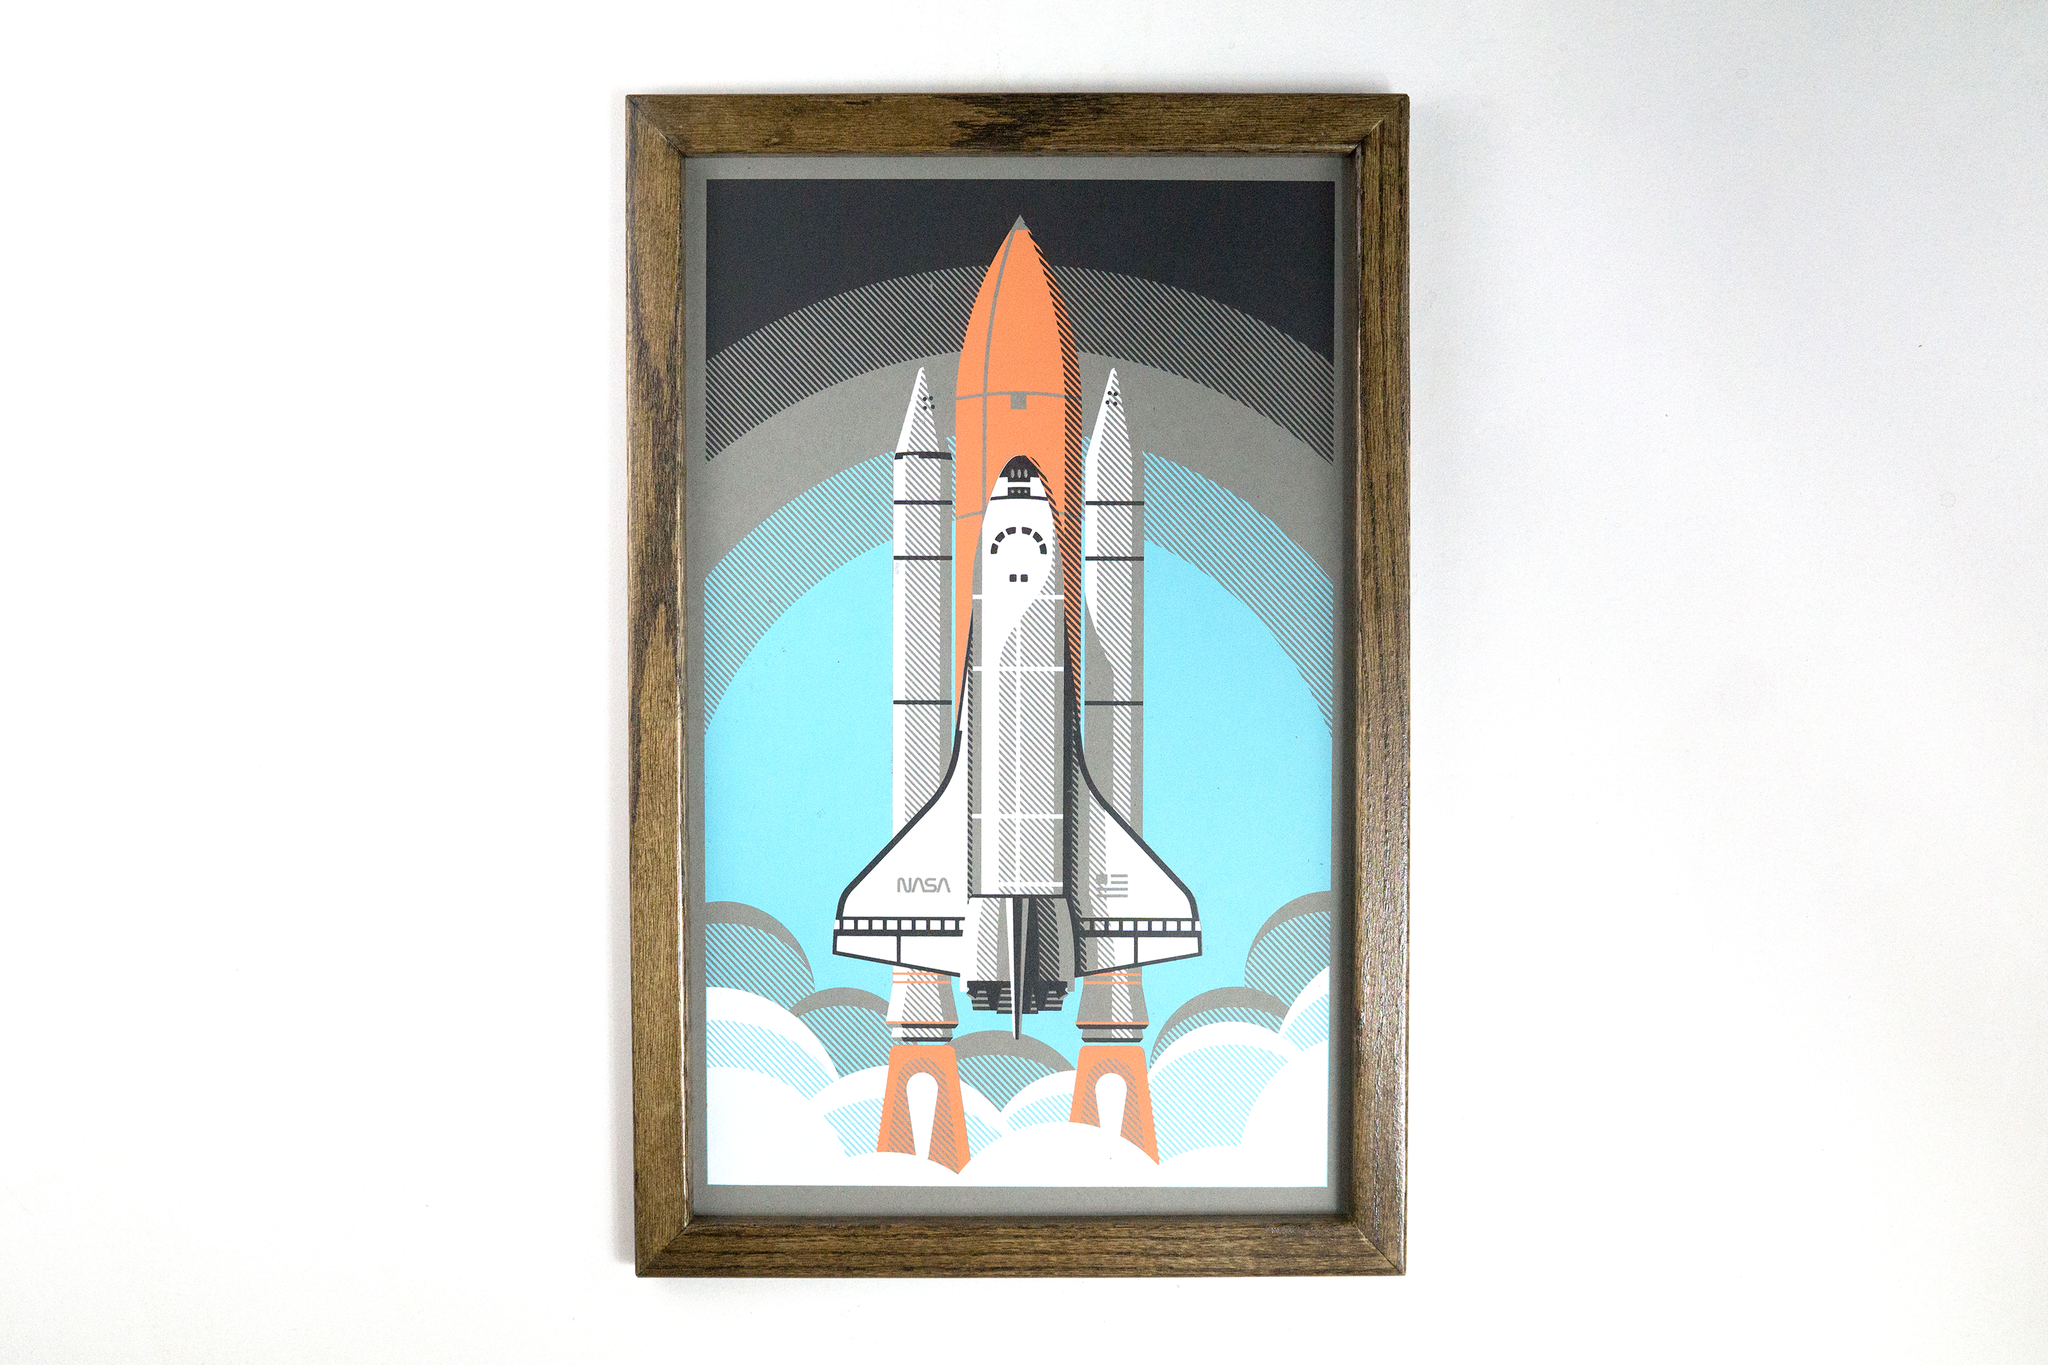 Space Shuttle on Paper